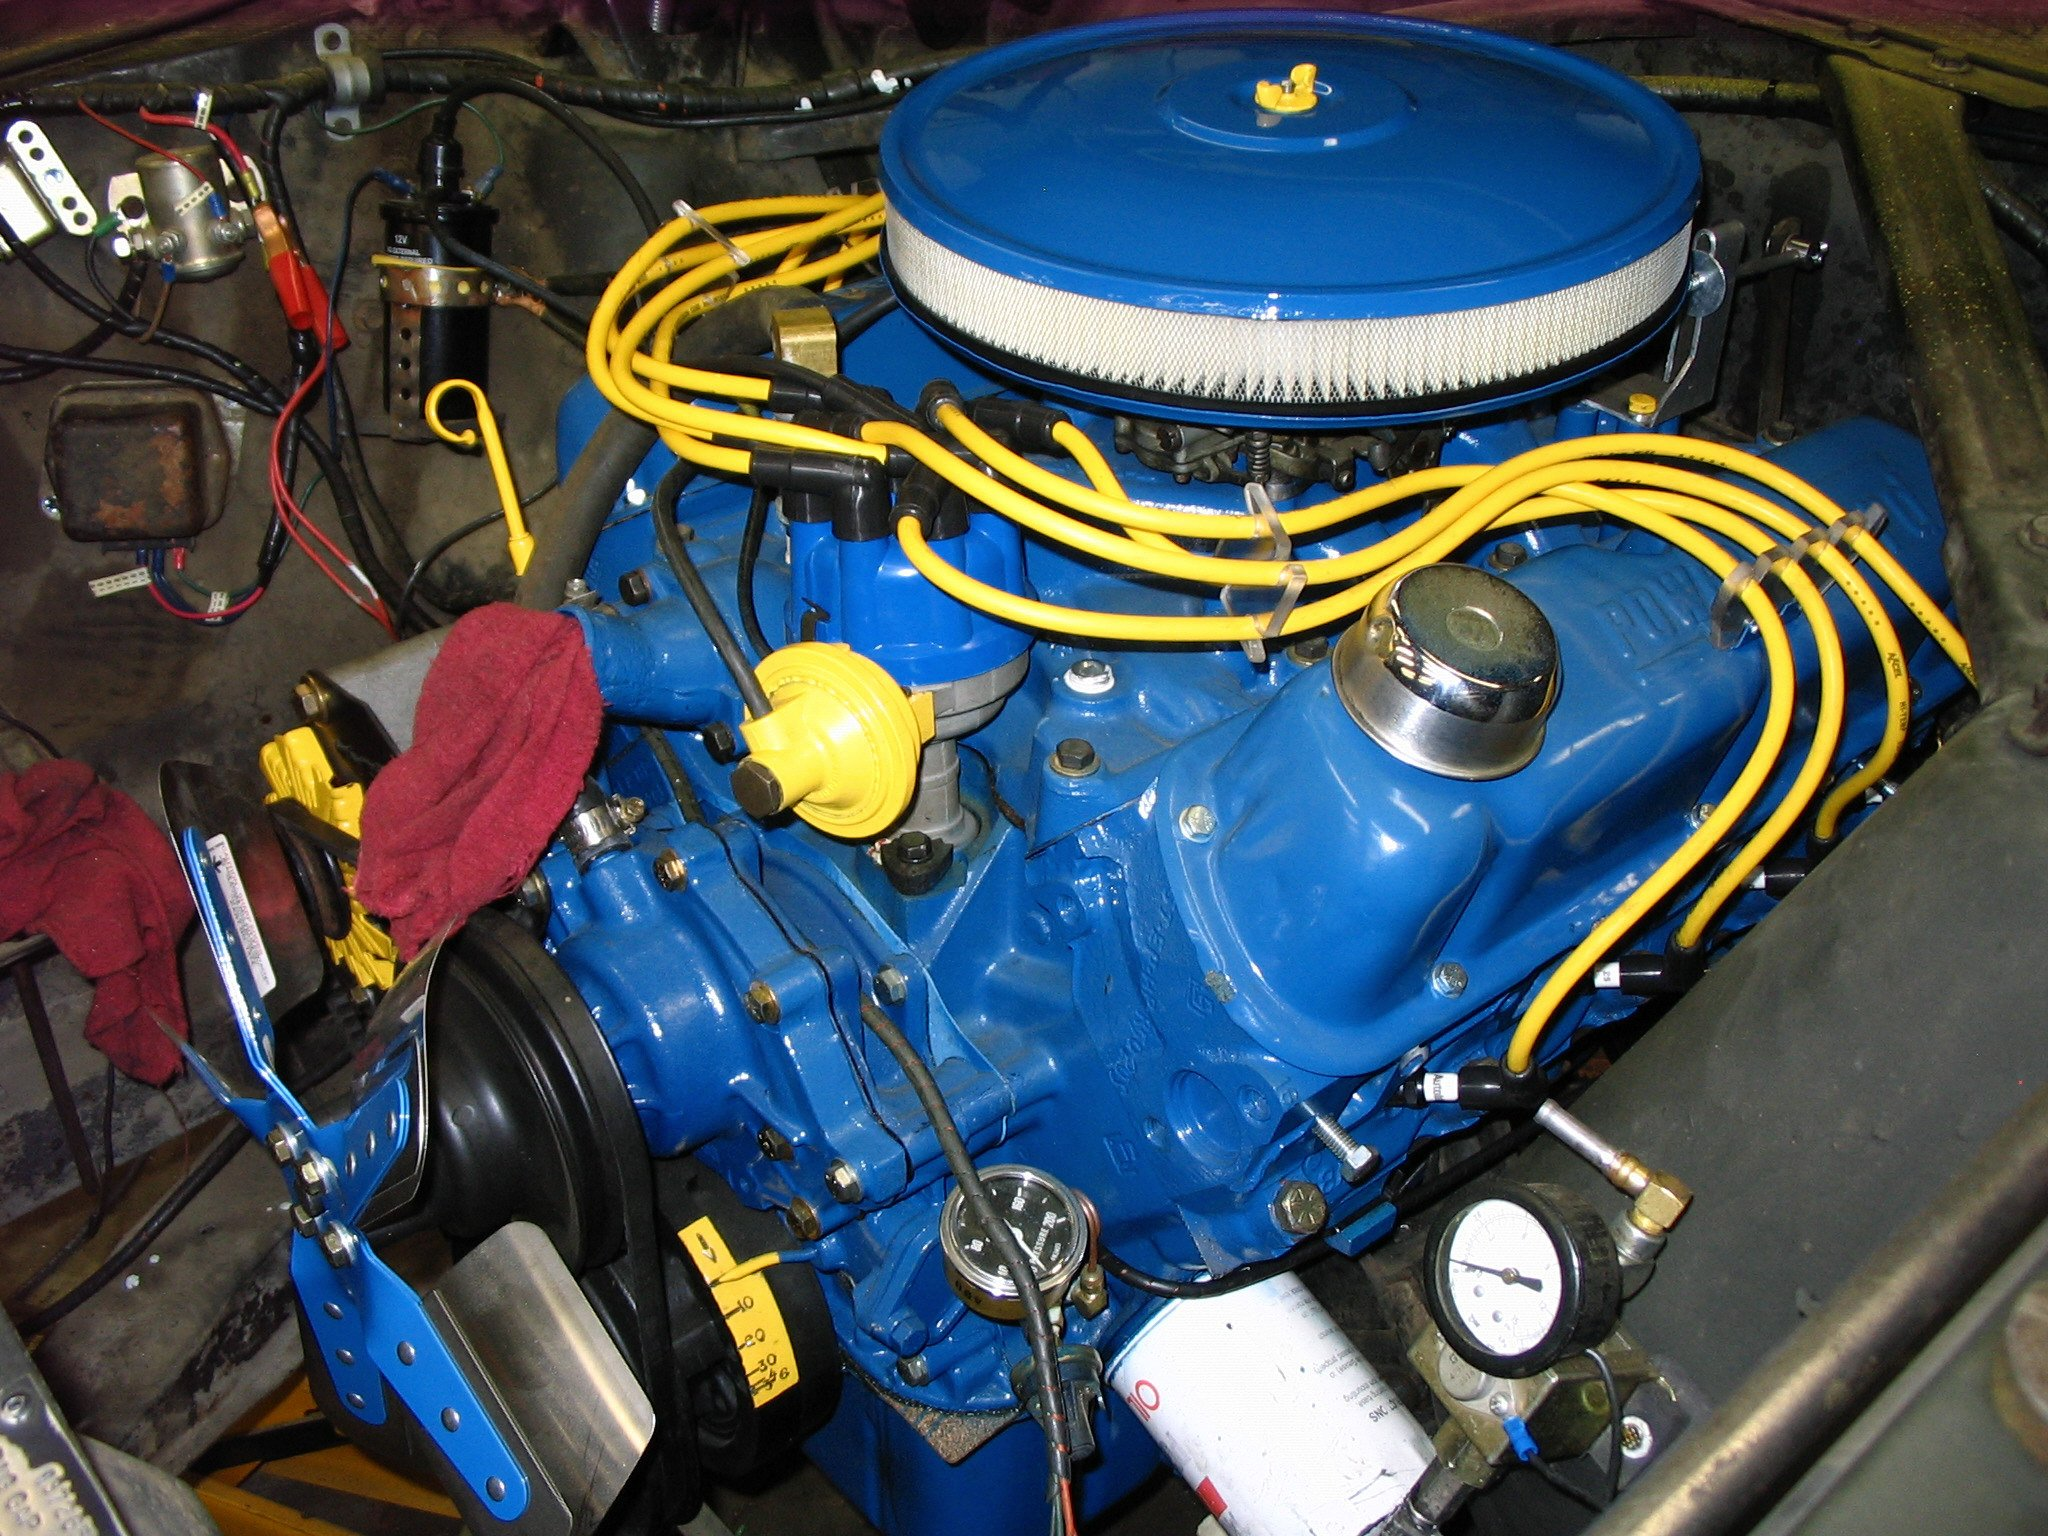 1971 ford 302 engine diagram Images Gallery. new 347 up and running but  question about the timing ford mustang rh allfordmustangs com